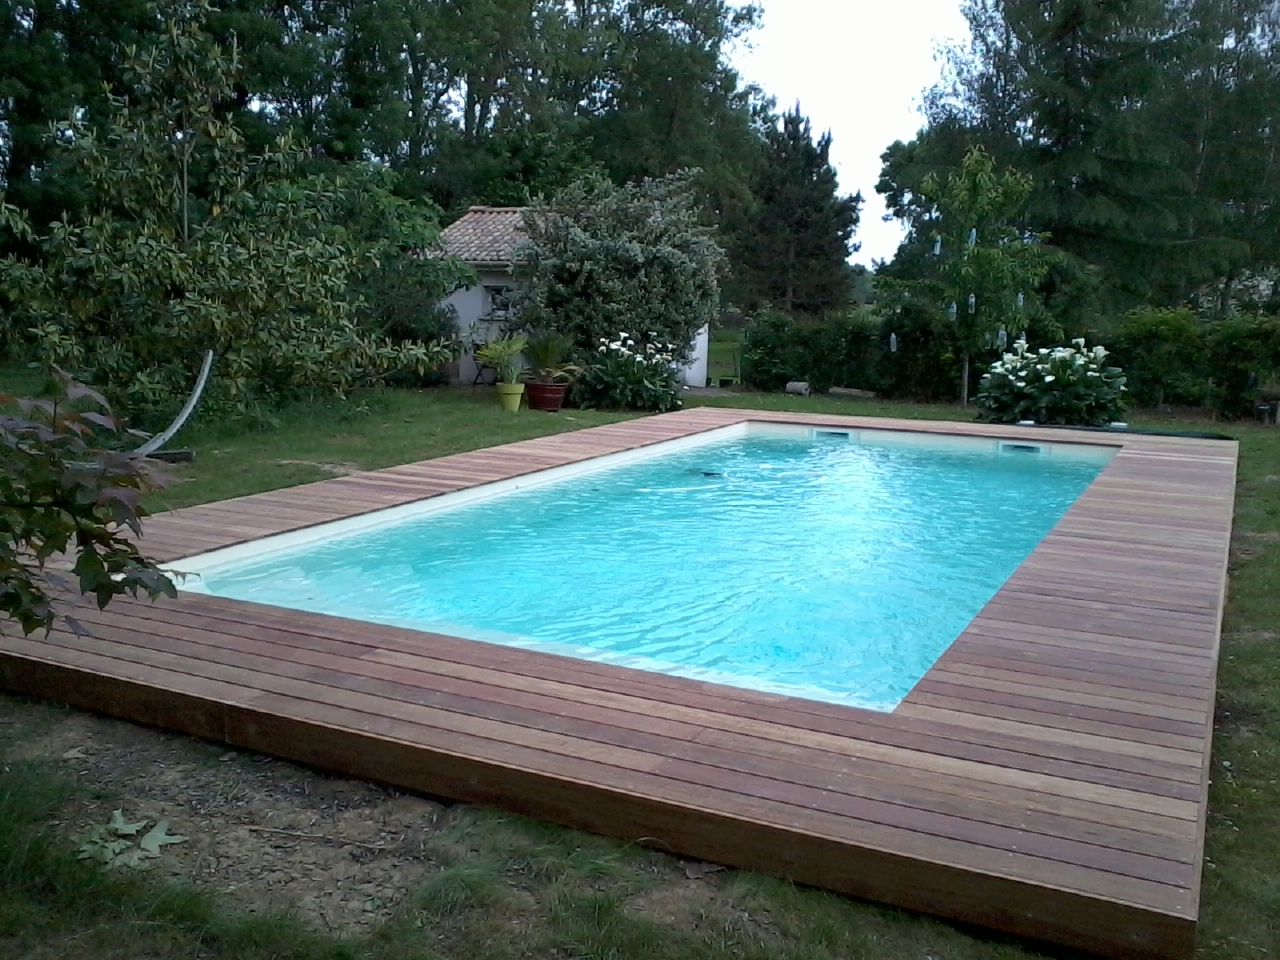 Entourage piscine design les derni res id es de design et int ressantes for Entourage piscine design